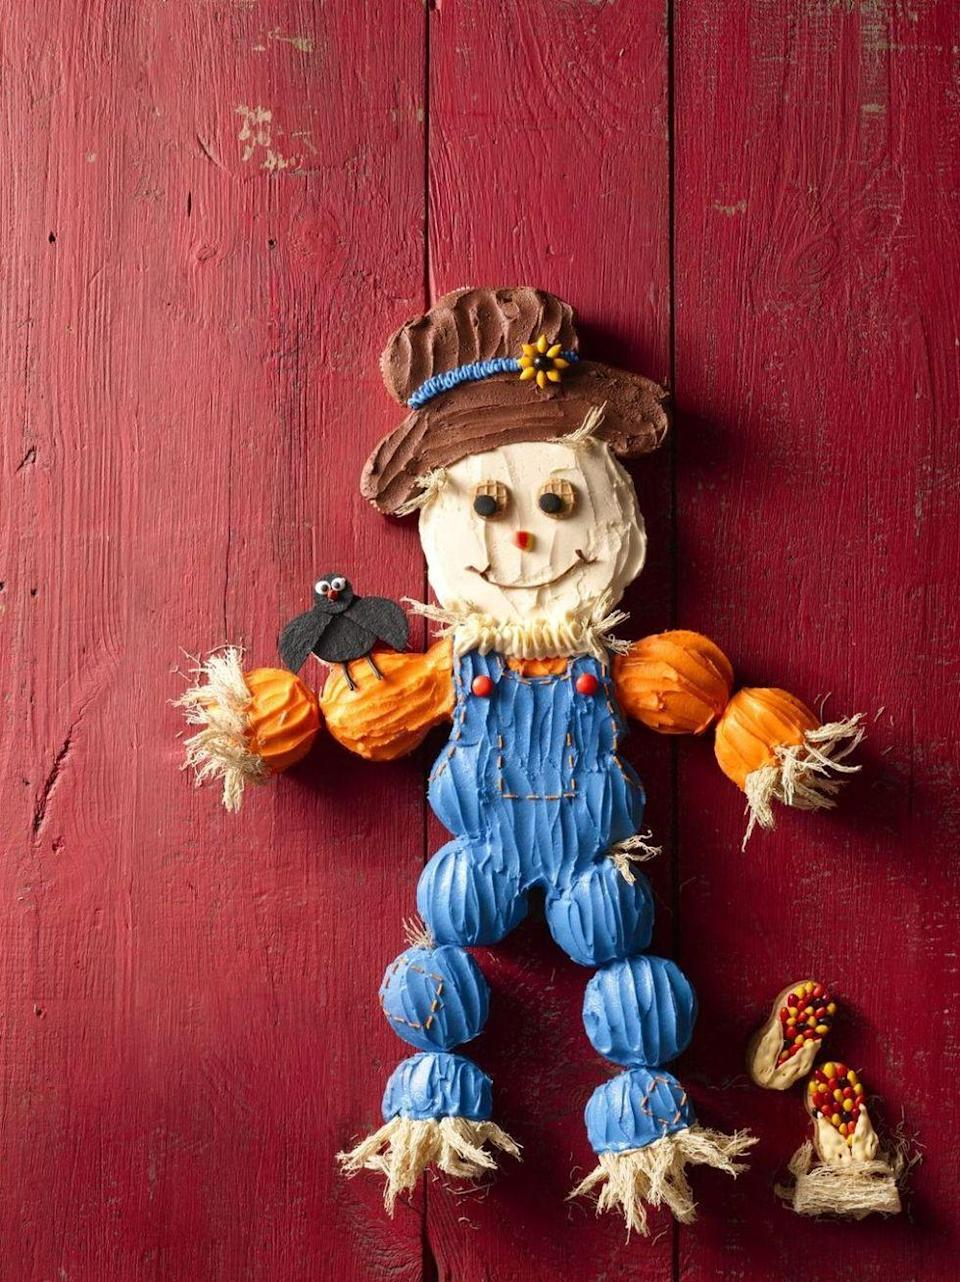 """<p>There's nothing scary about this scarecrow. Use cupcakes to make this giant, colorful creation that's much easier to distribute come serving time. </p><p><em><a href=""""https://www.womansday.com/food-recipes/food-drinks/recipes/a56159/cupcake-scarecrow-recipe/"""" rel=""""nofollow noopener"""" target=""""_blank"""" data-ylk=""""slk:Get the recipe for Scarecrow Cupcakes Cake."""" class=""""link rapid-noclick-resp"""">Get the recipe for Scarecrow Cupcakes Cake.</a></em></p>"""